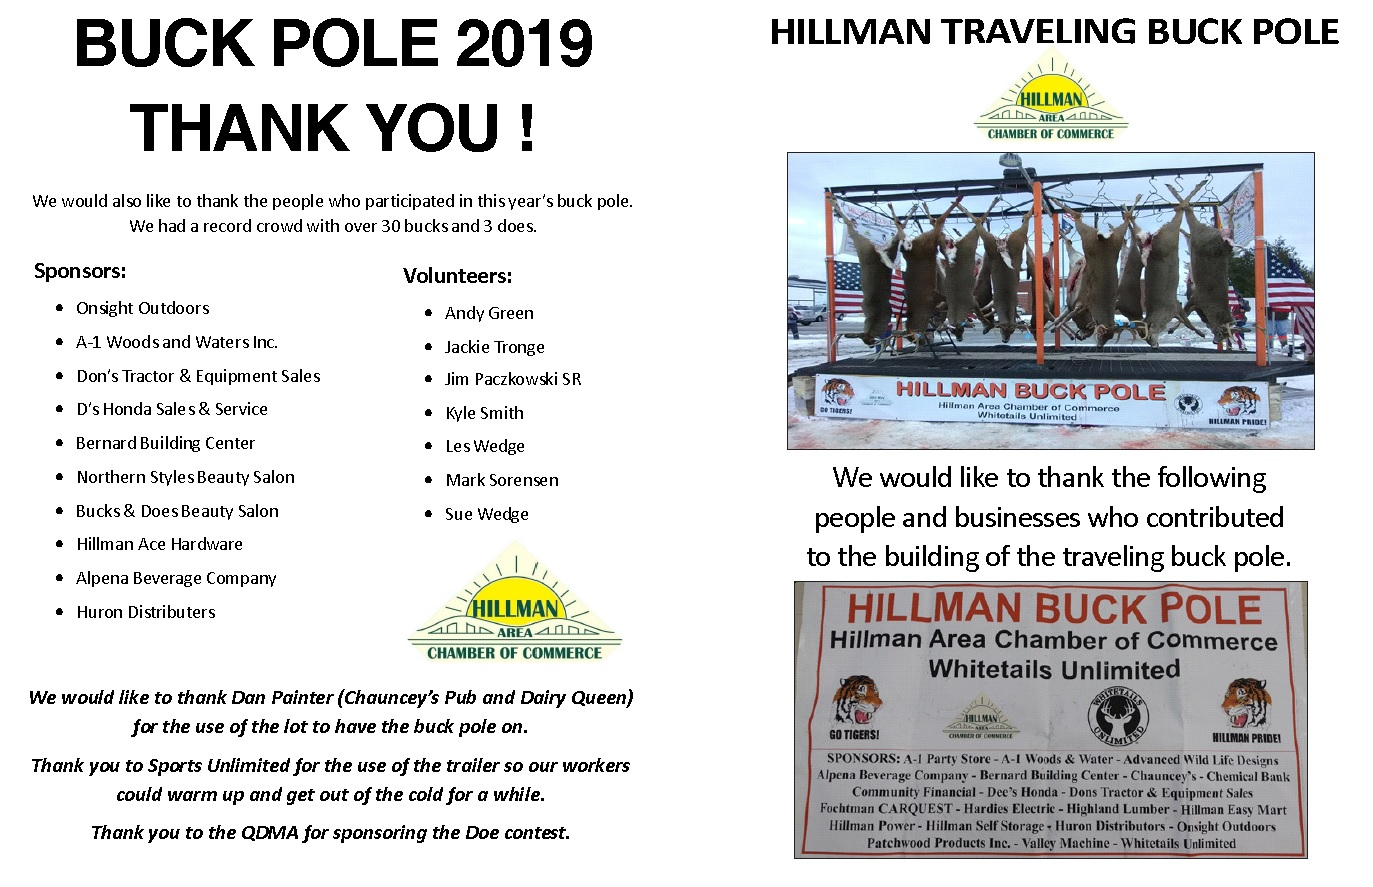 2019 buck pole insert---FROM TRIBUNE----FINAL PROOF - side 2